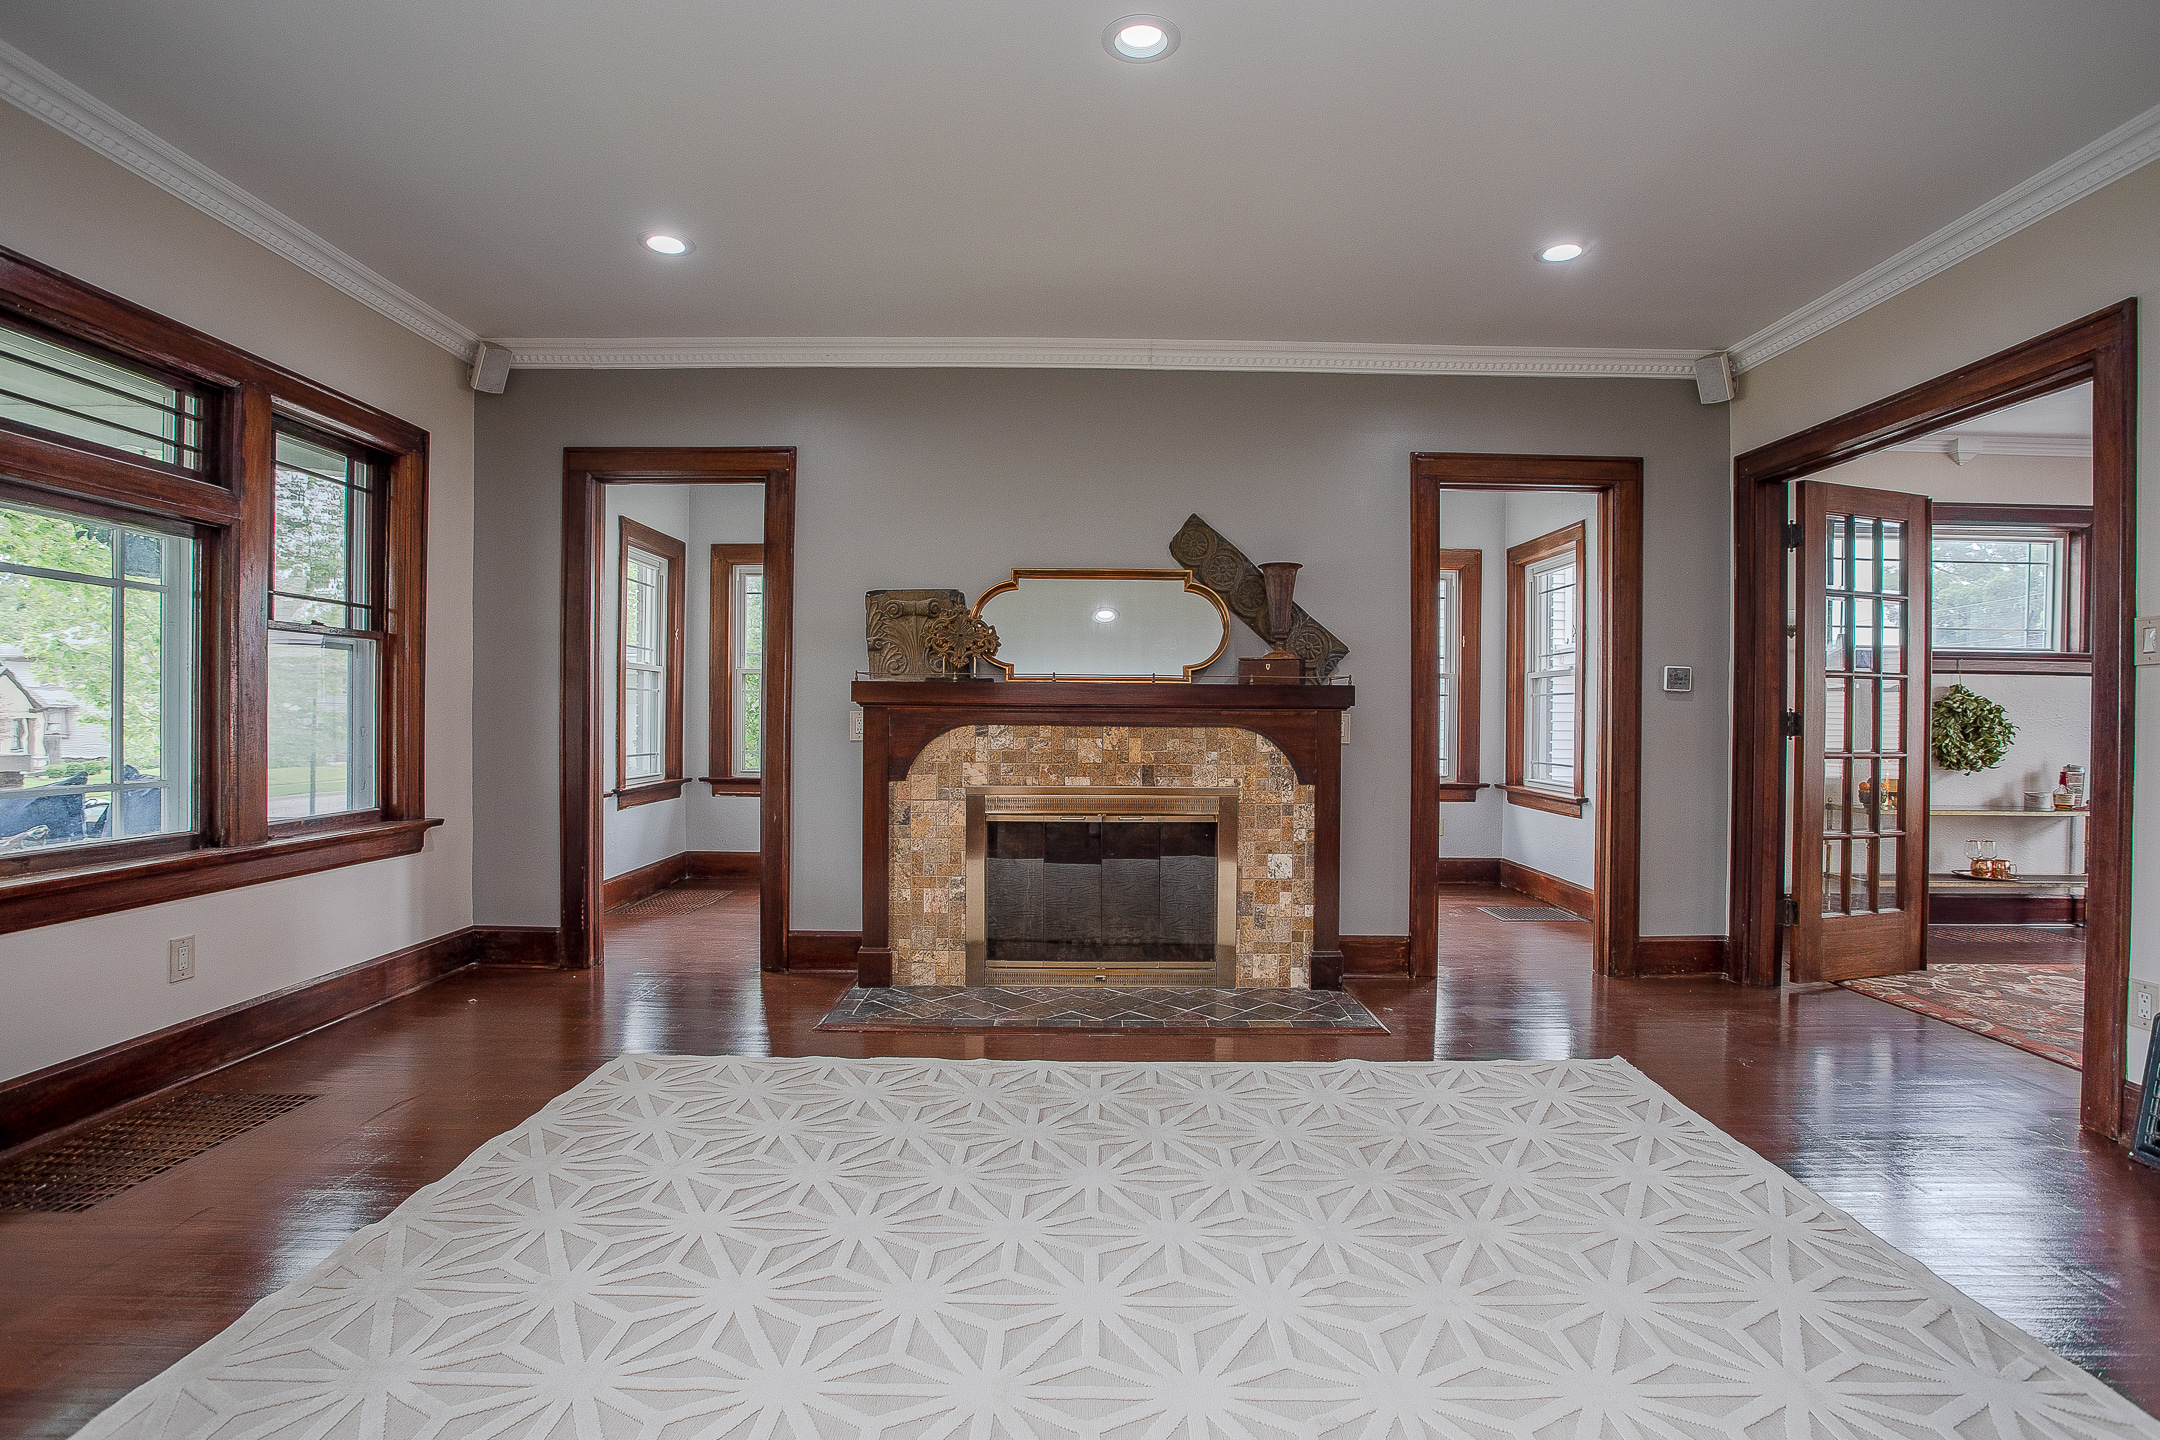 fireplace doors to reading room